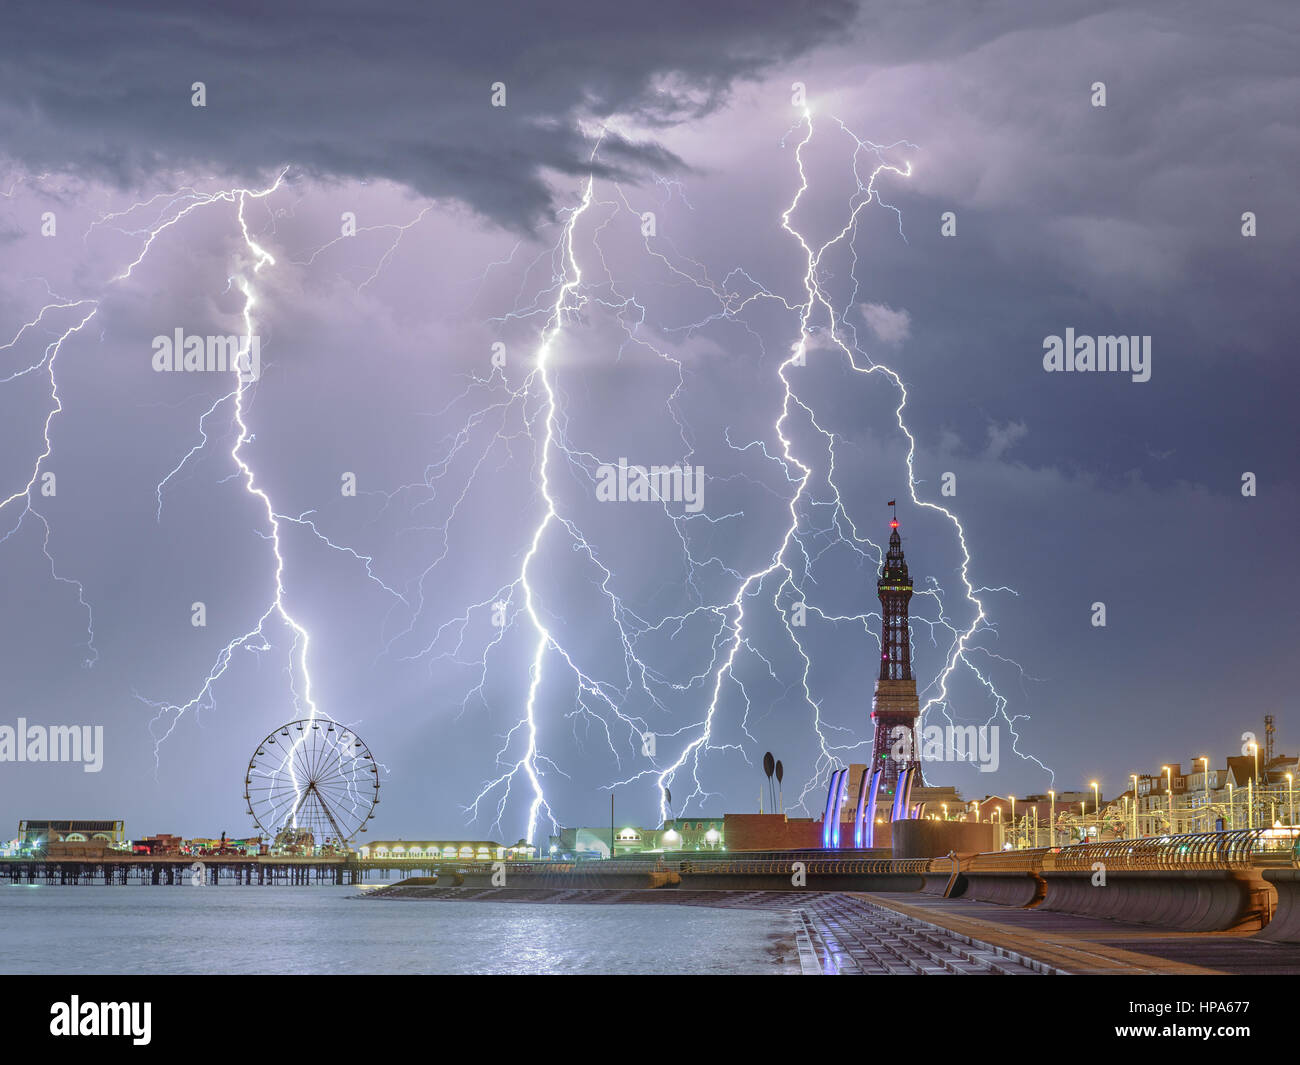 Lightning storm over Blackpool - Stock Image